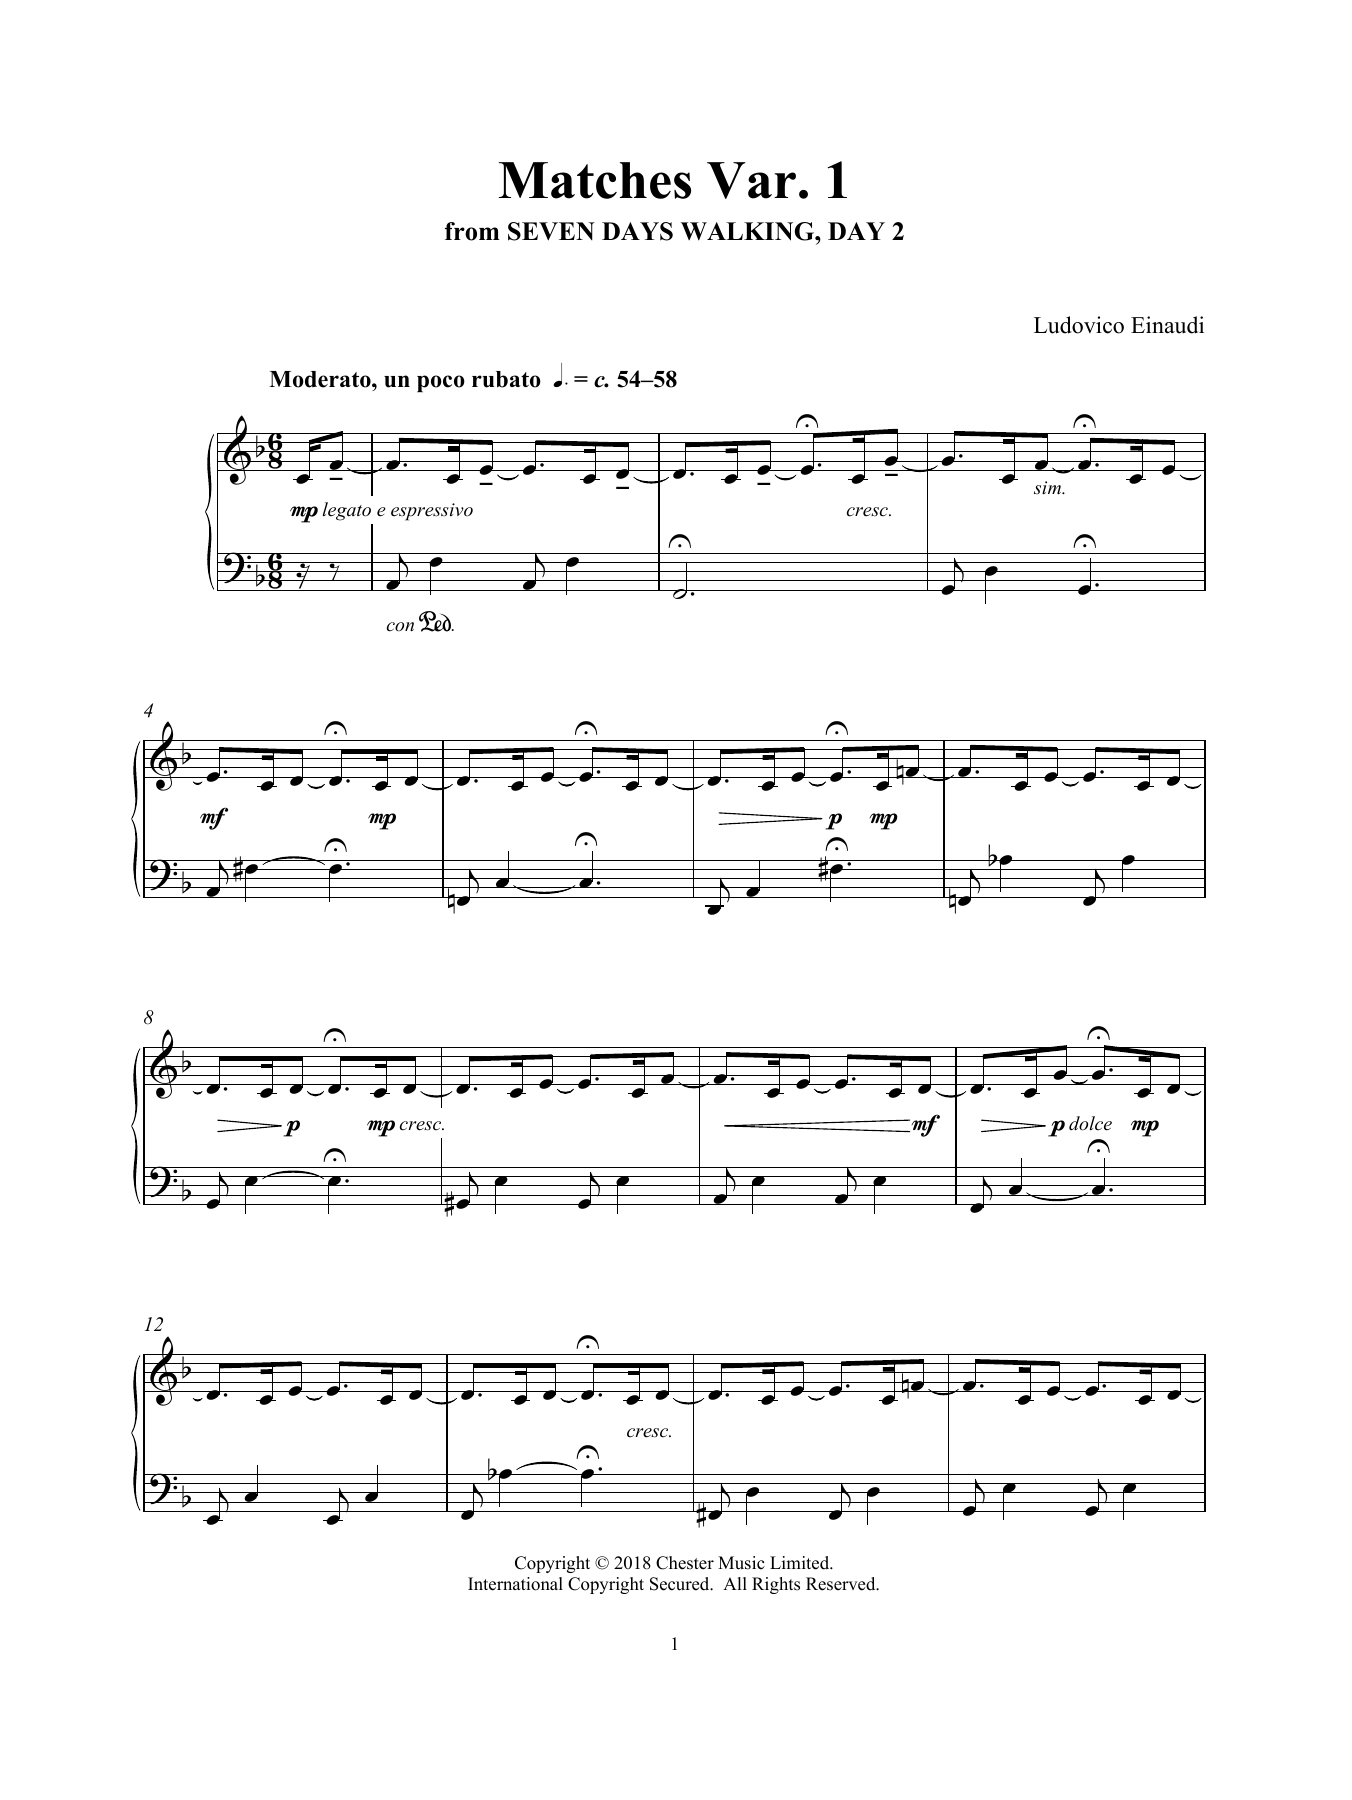 Ludovico Einaudi 'Matches Var  1 (from Seven Days Walking: Day 2)' Sheet  Music Notes, Chords | Download Printable Piano Solo - SKU: 412763